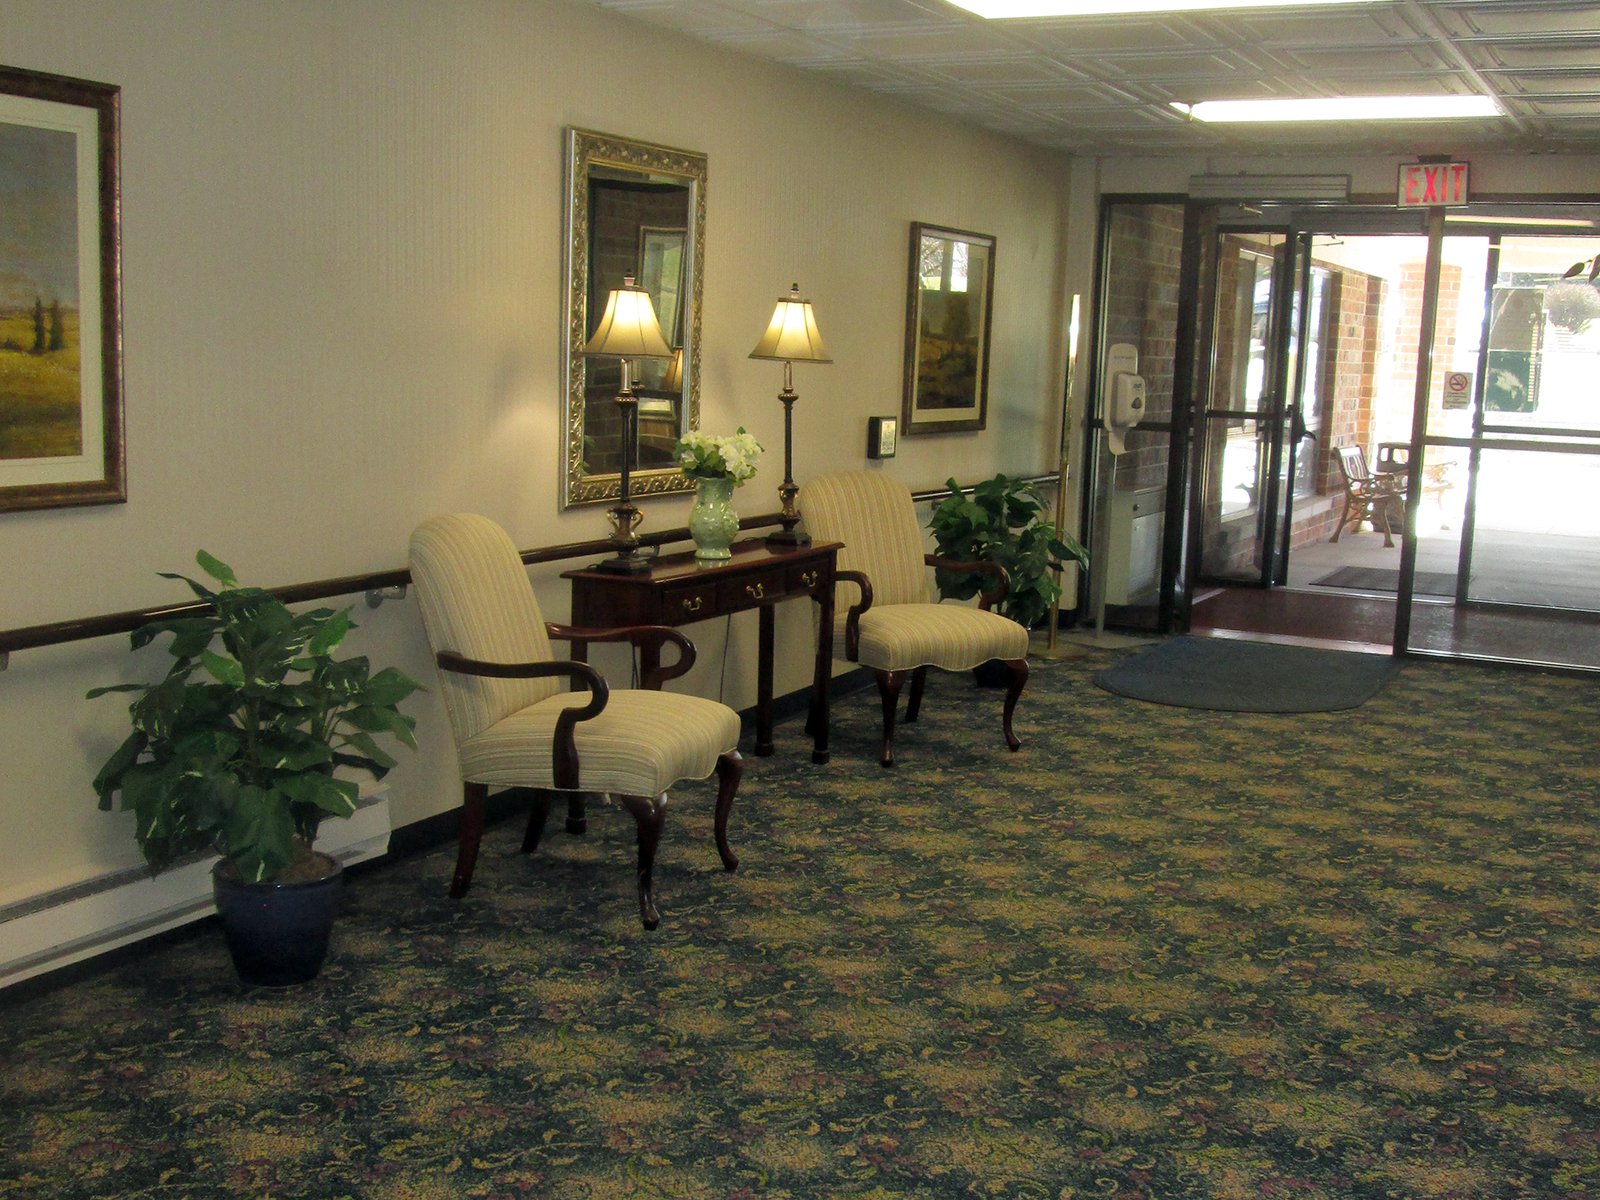 FarmingtonHillsInn_Entrance.jpg